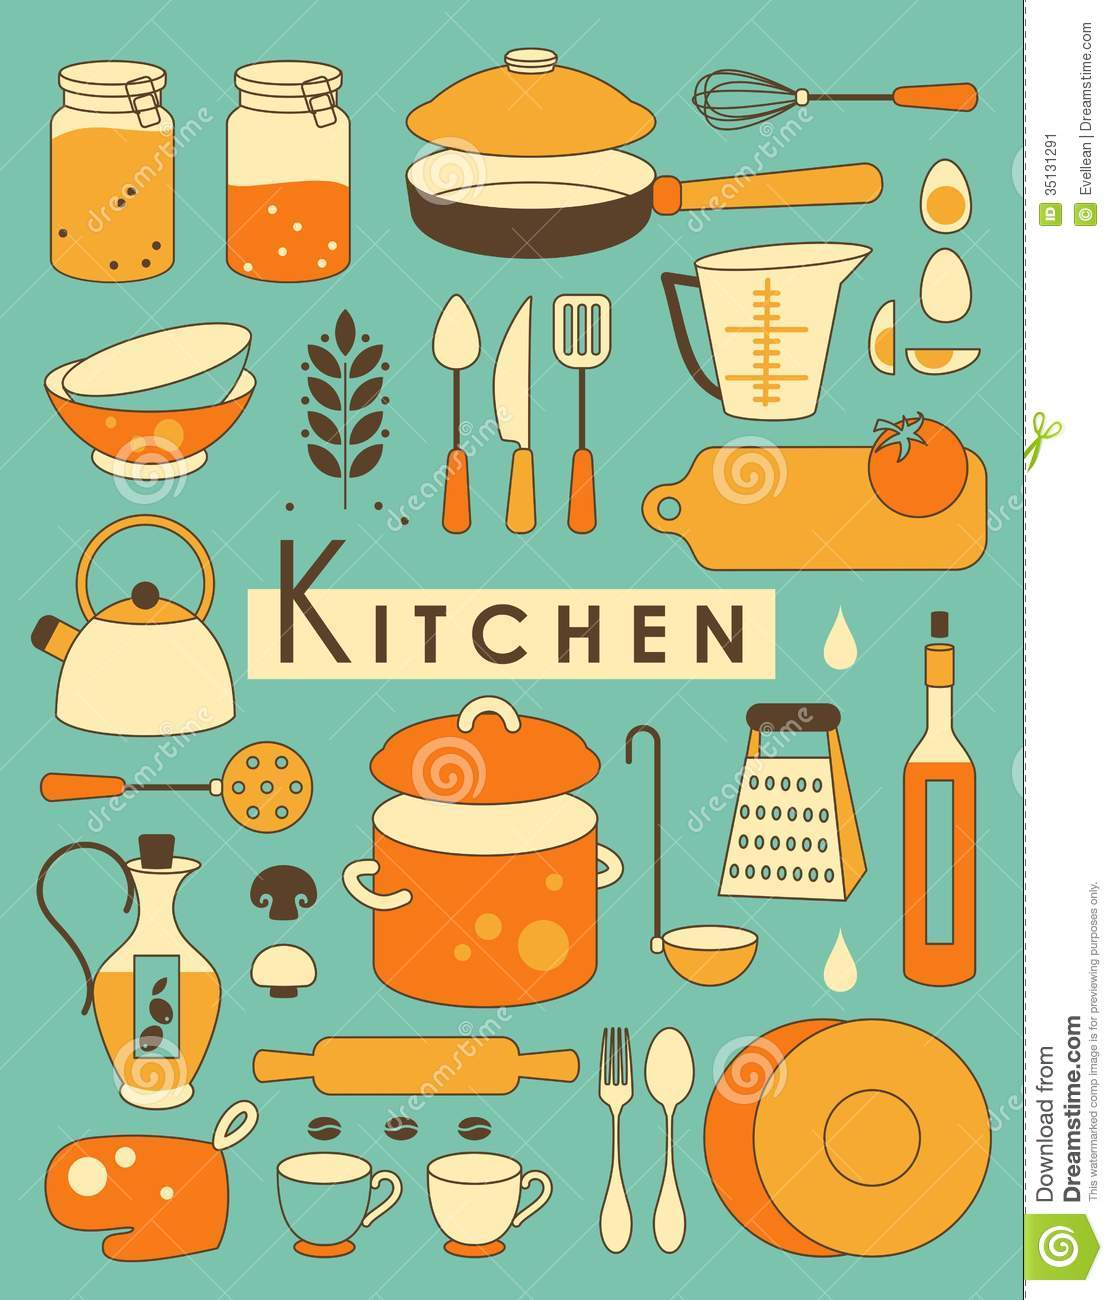 Retro Kitchen Illustration: Kitchen Set Stock Vector. Illustration Of Food, Design